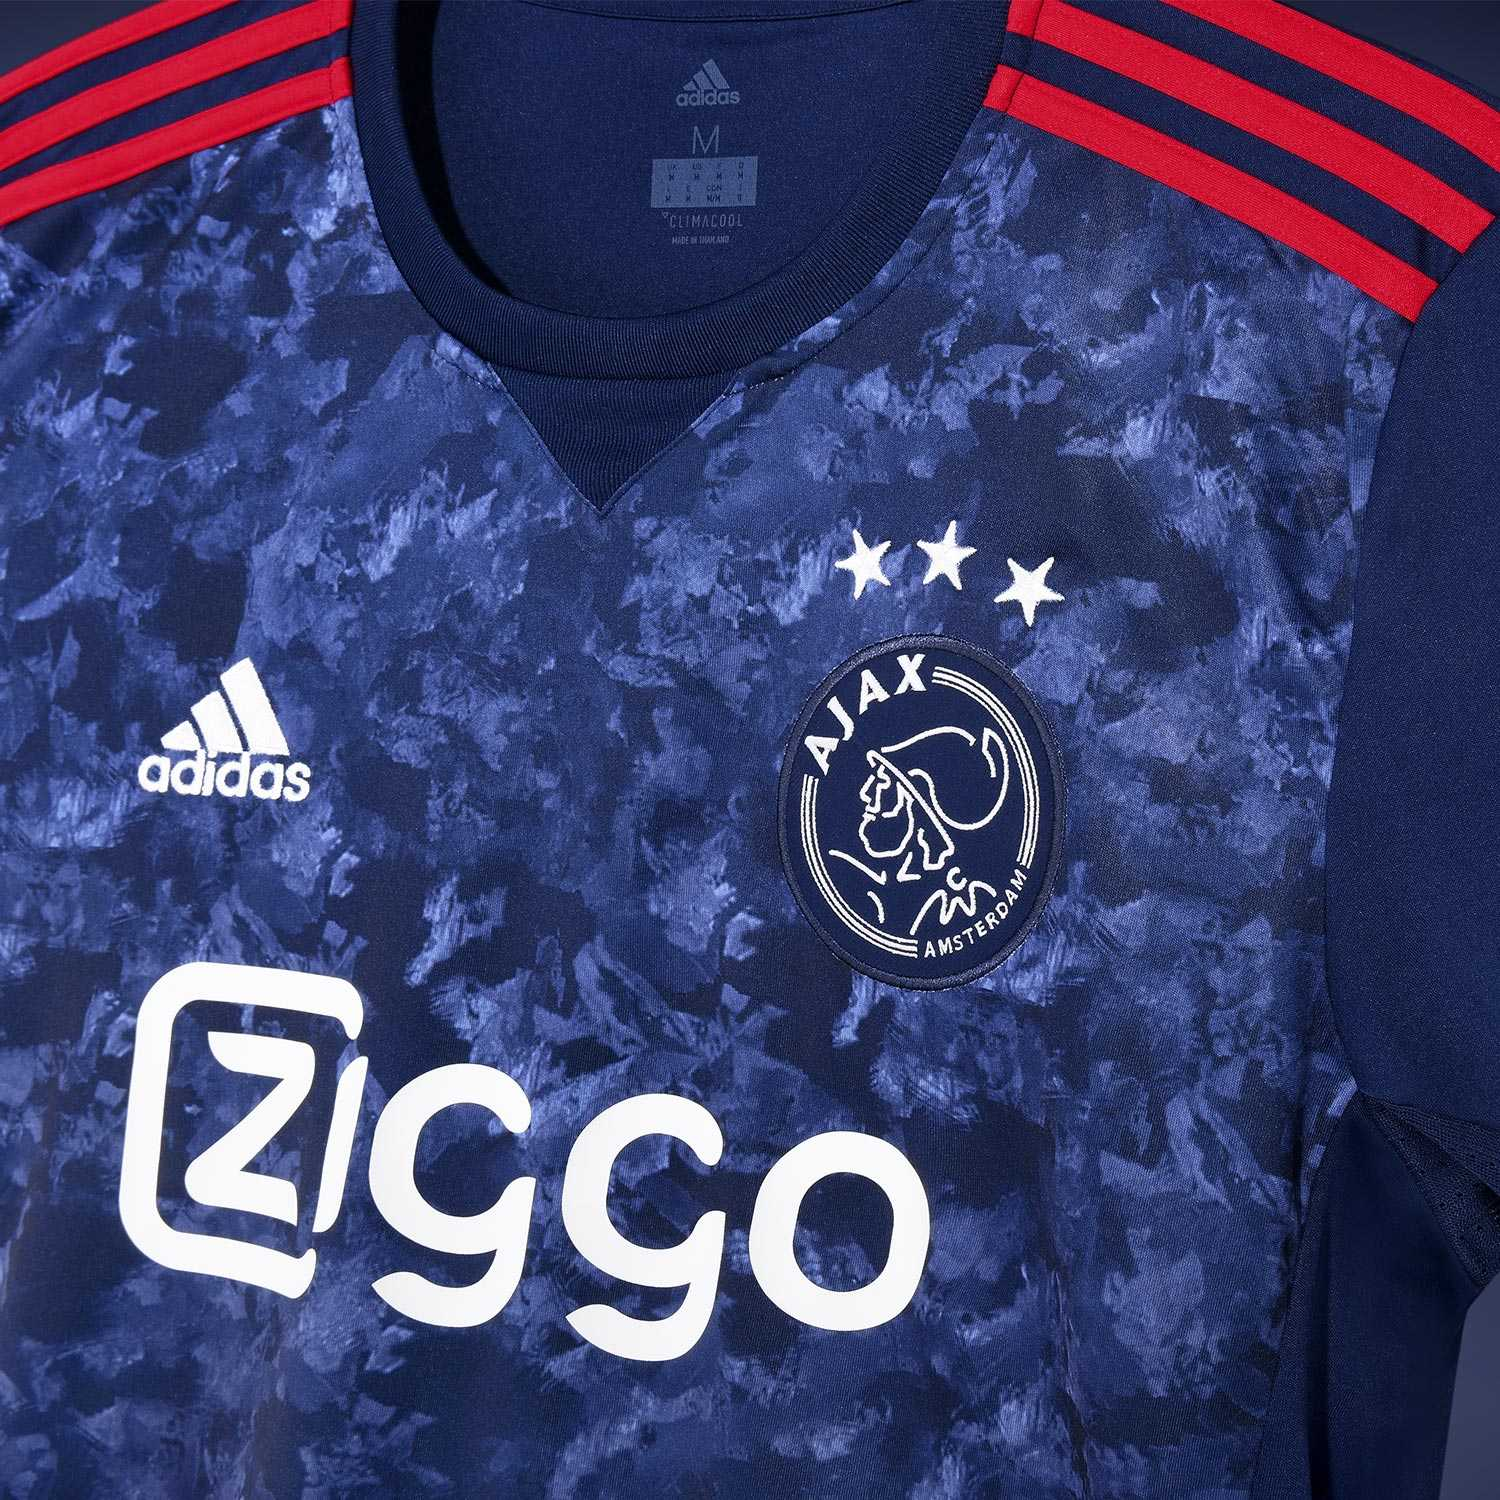 Ajax 17-18 Away Kit Released